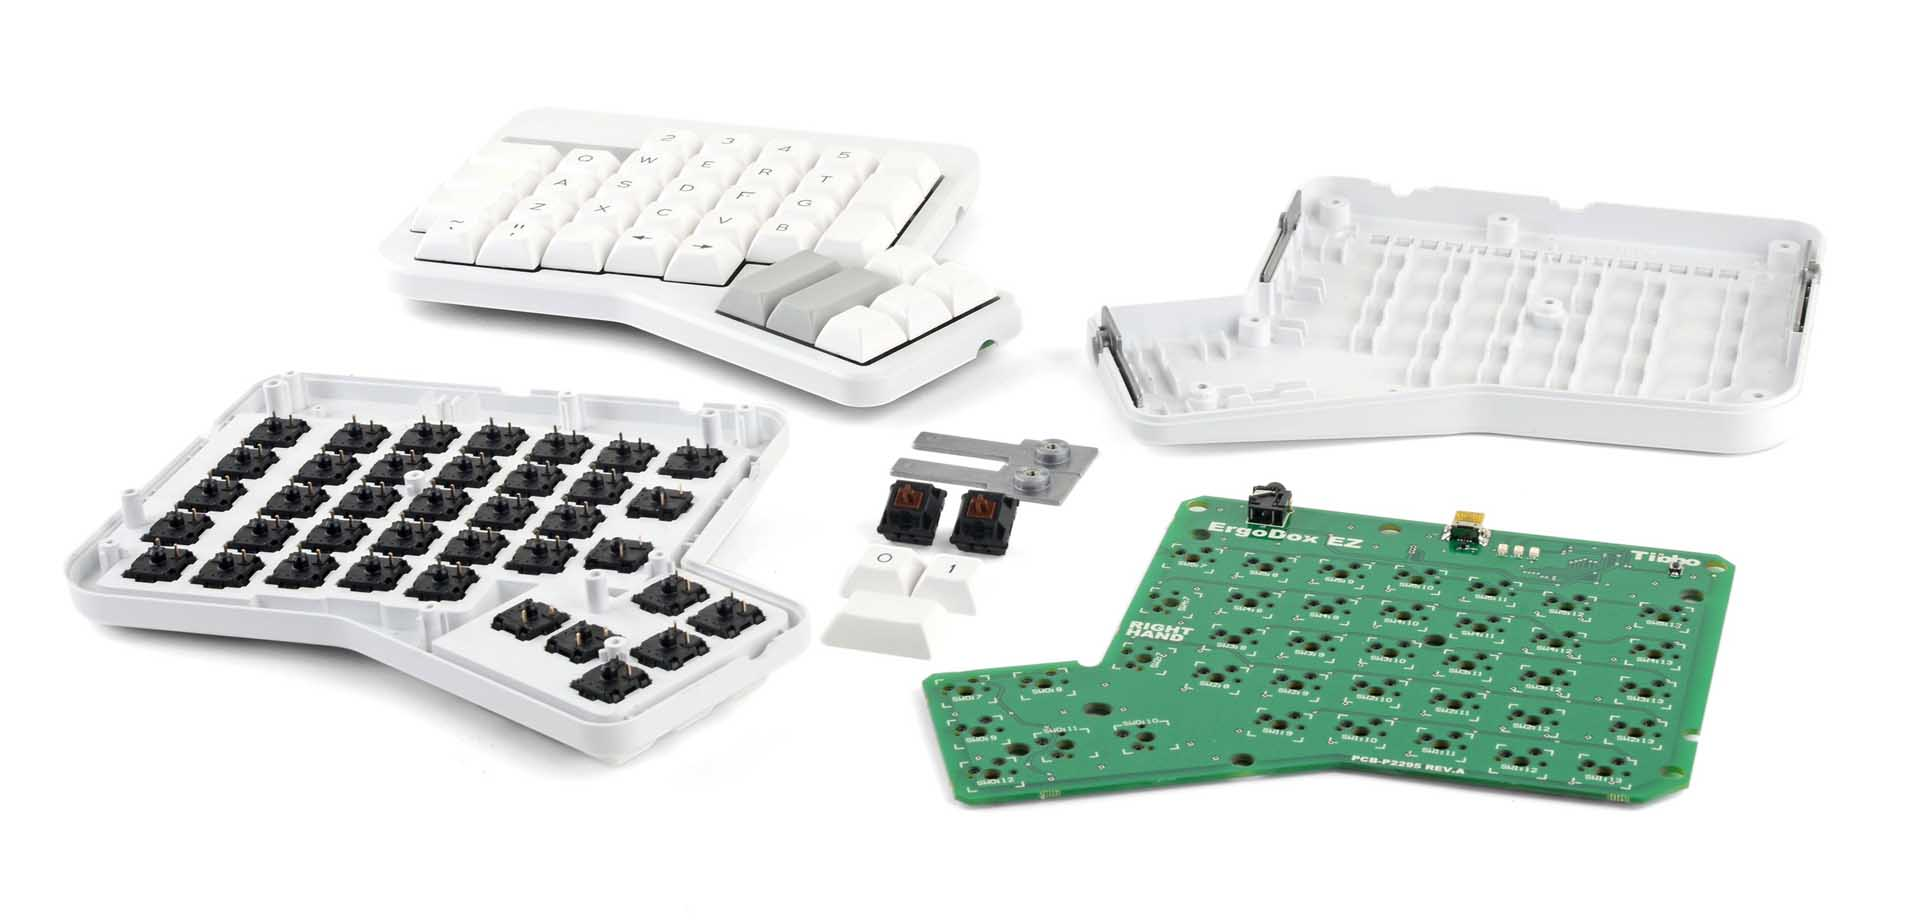 The ErgoDox EZ keyboard, torn down to its individual components.